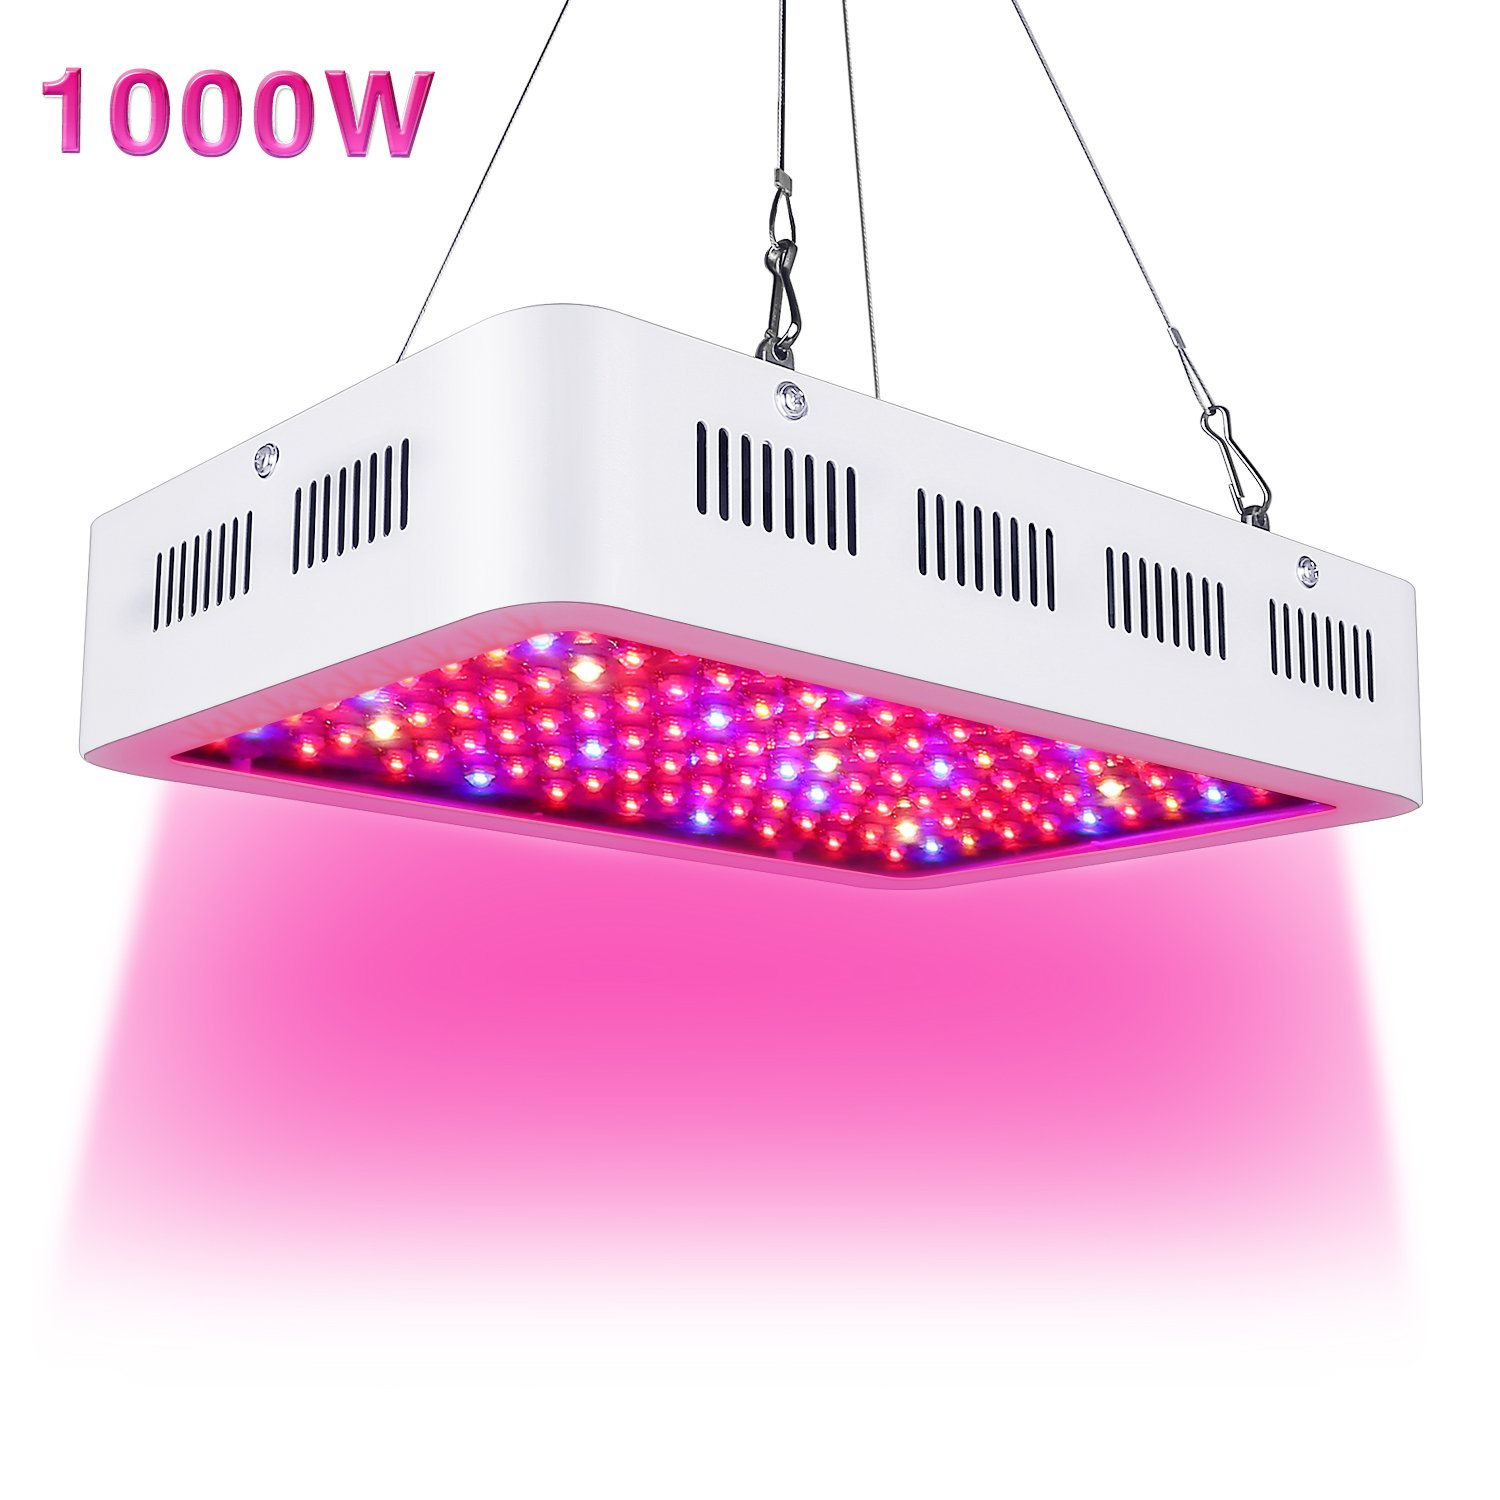 Led Grow Light 1000W, Full Spectrum Grow Lights Double Chips Growing Lamps with UV & IR with Protective Sunglasses for Indoor Plants Greenhouse Hydroponic Veg and Flower